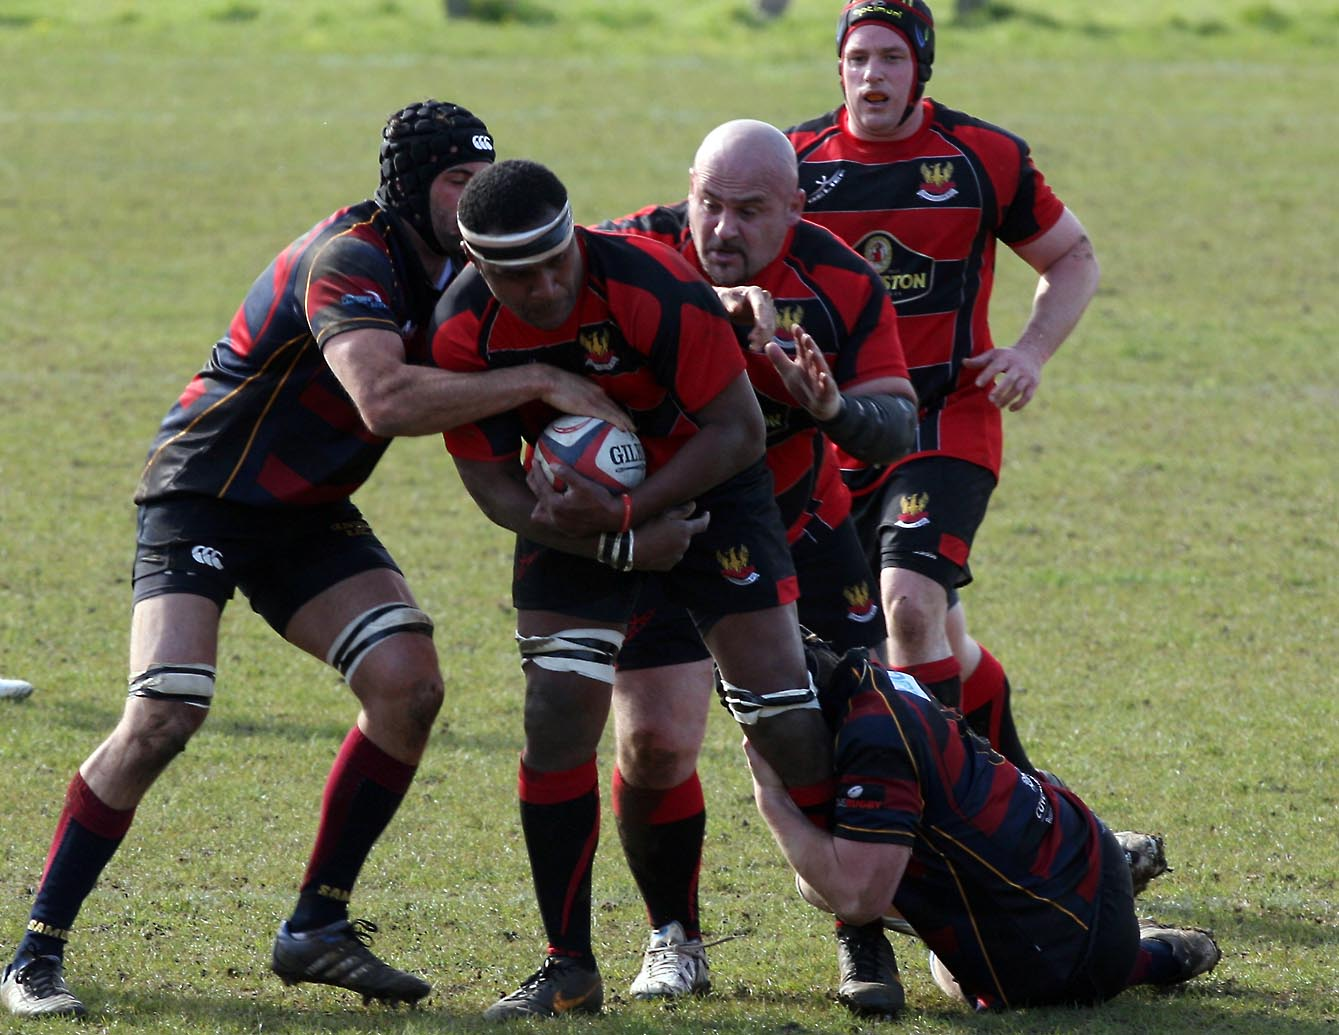 RUGBY: All Golds player Fisher bags vital tries on return for Cirencester